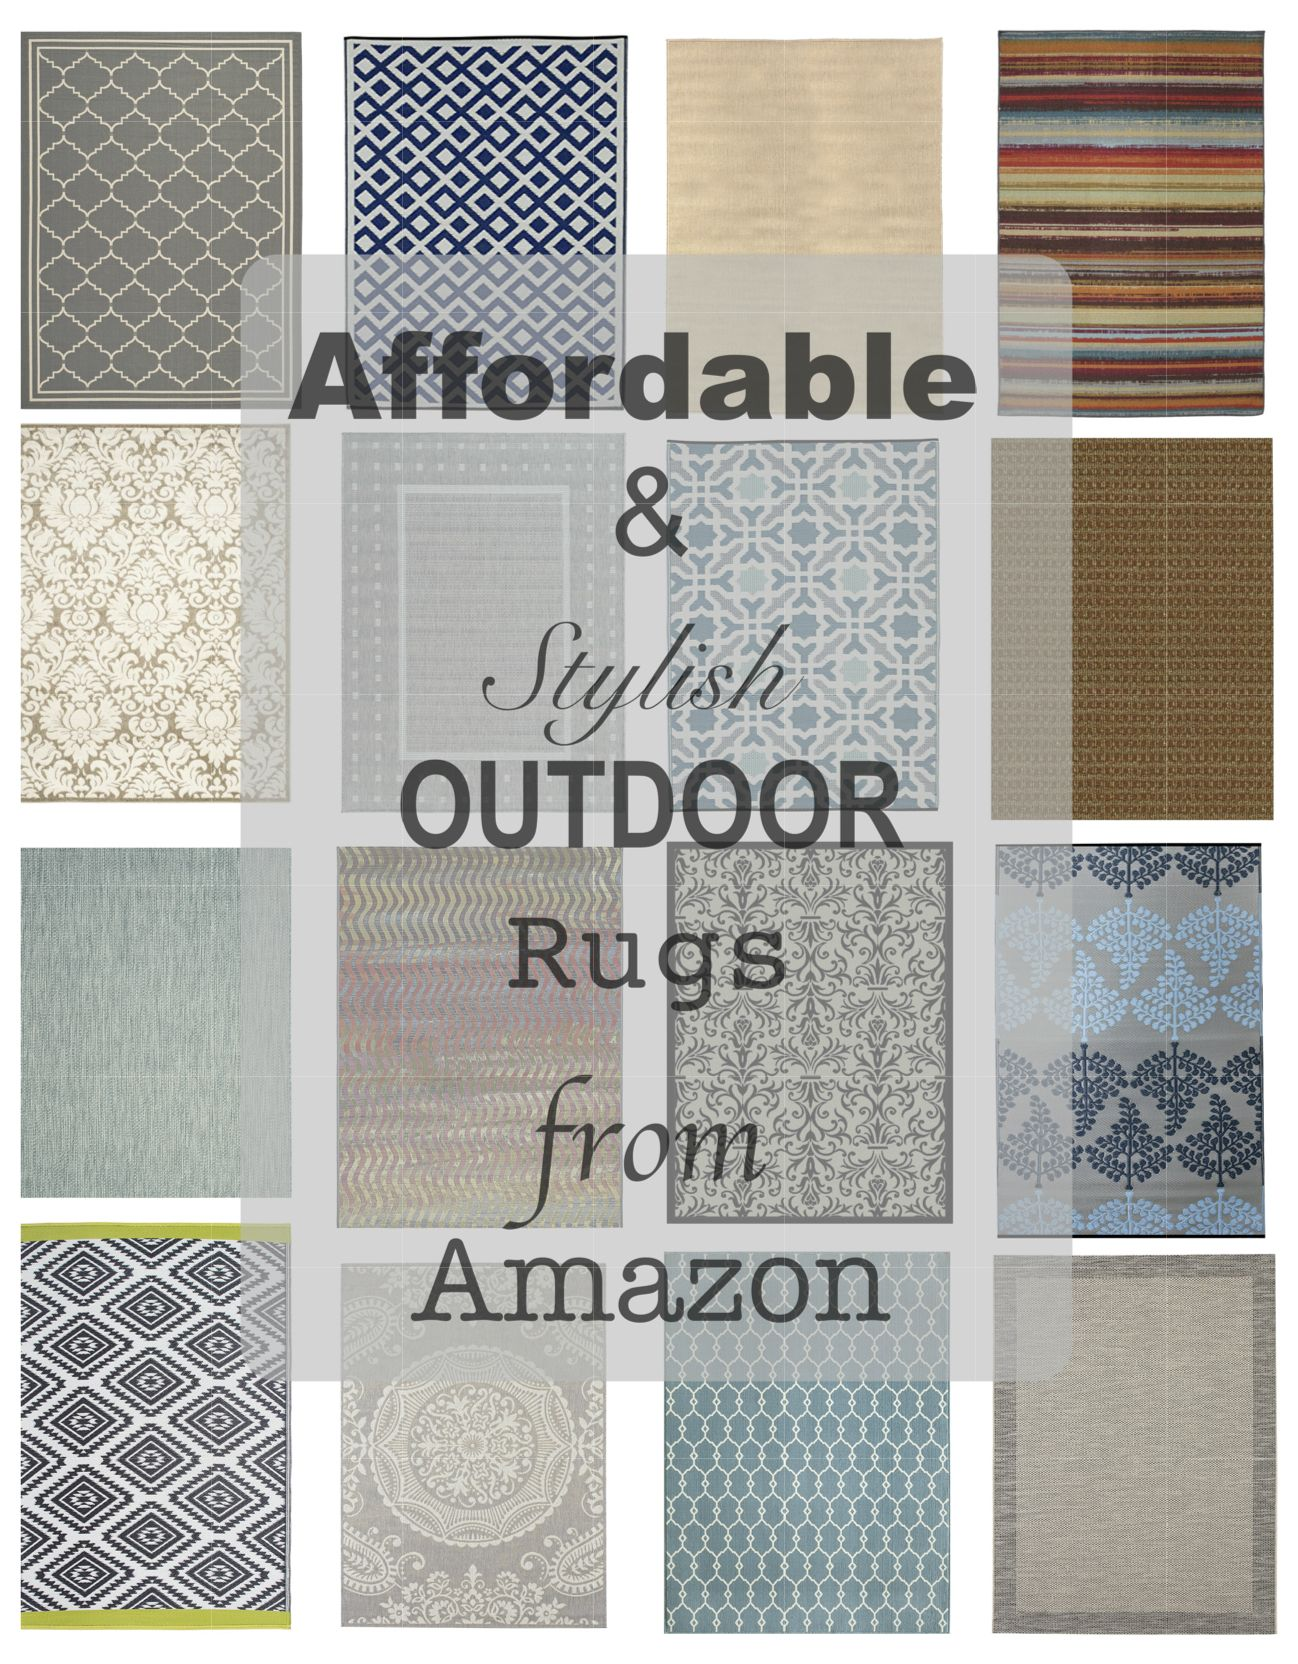 Outdoor Rugs.  Perfect Rugs for your porch or patio.  Porch rugs. Patio Decor. Outdoor living space.  Affordable rugs.  Amazon finds. #outdoorrugs